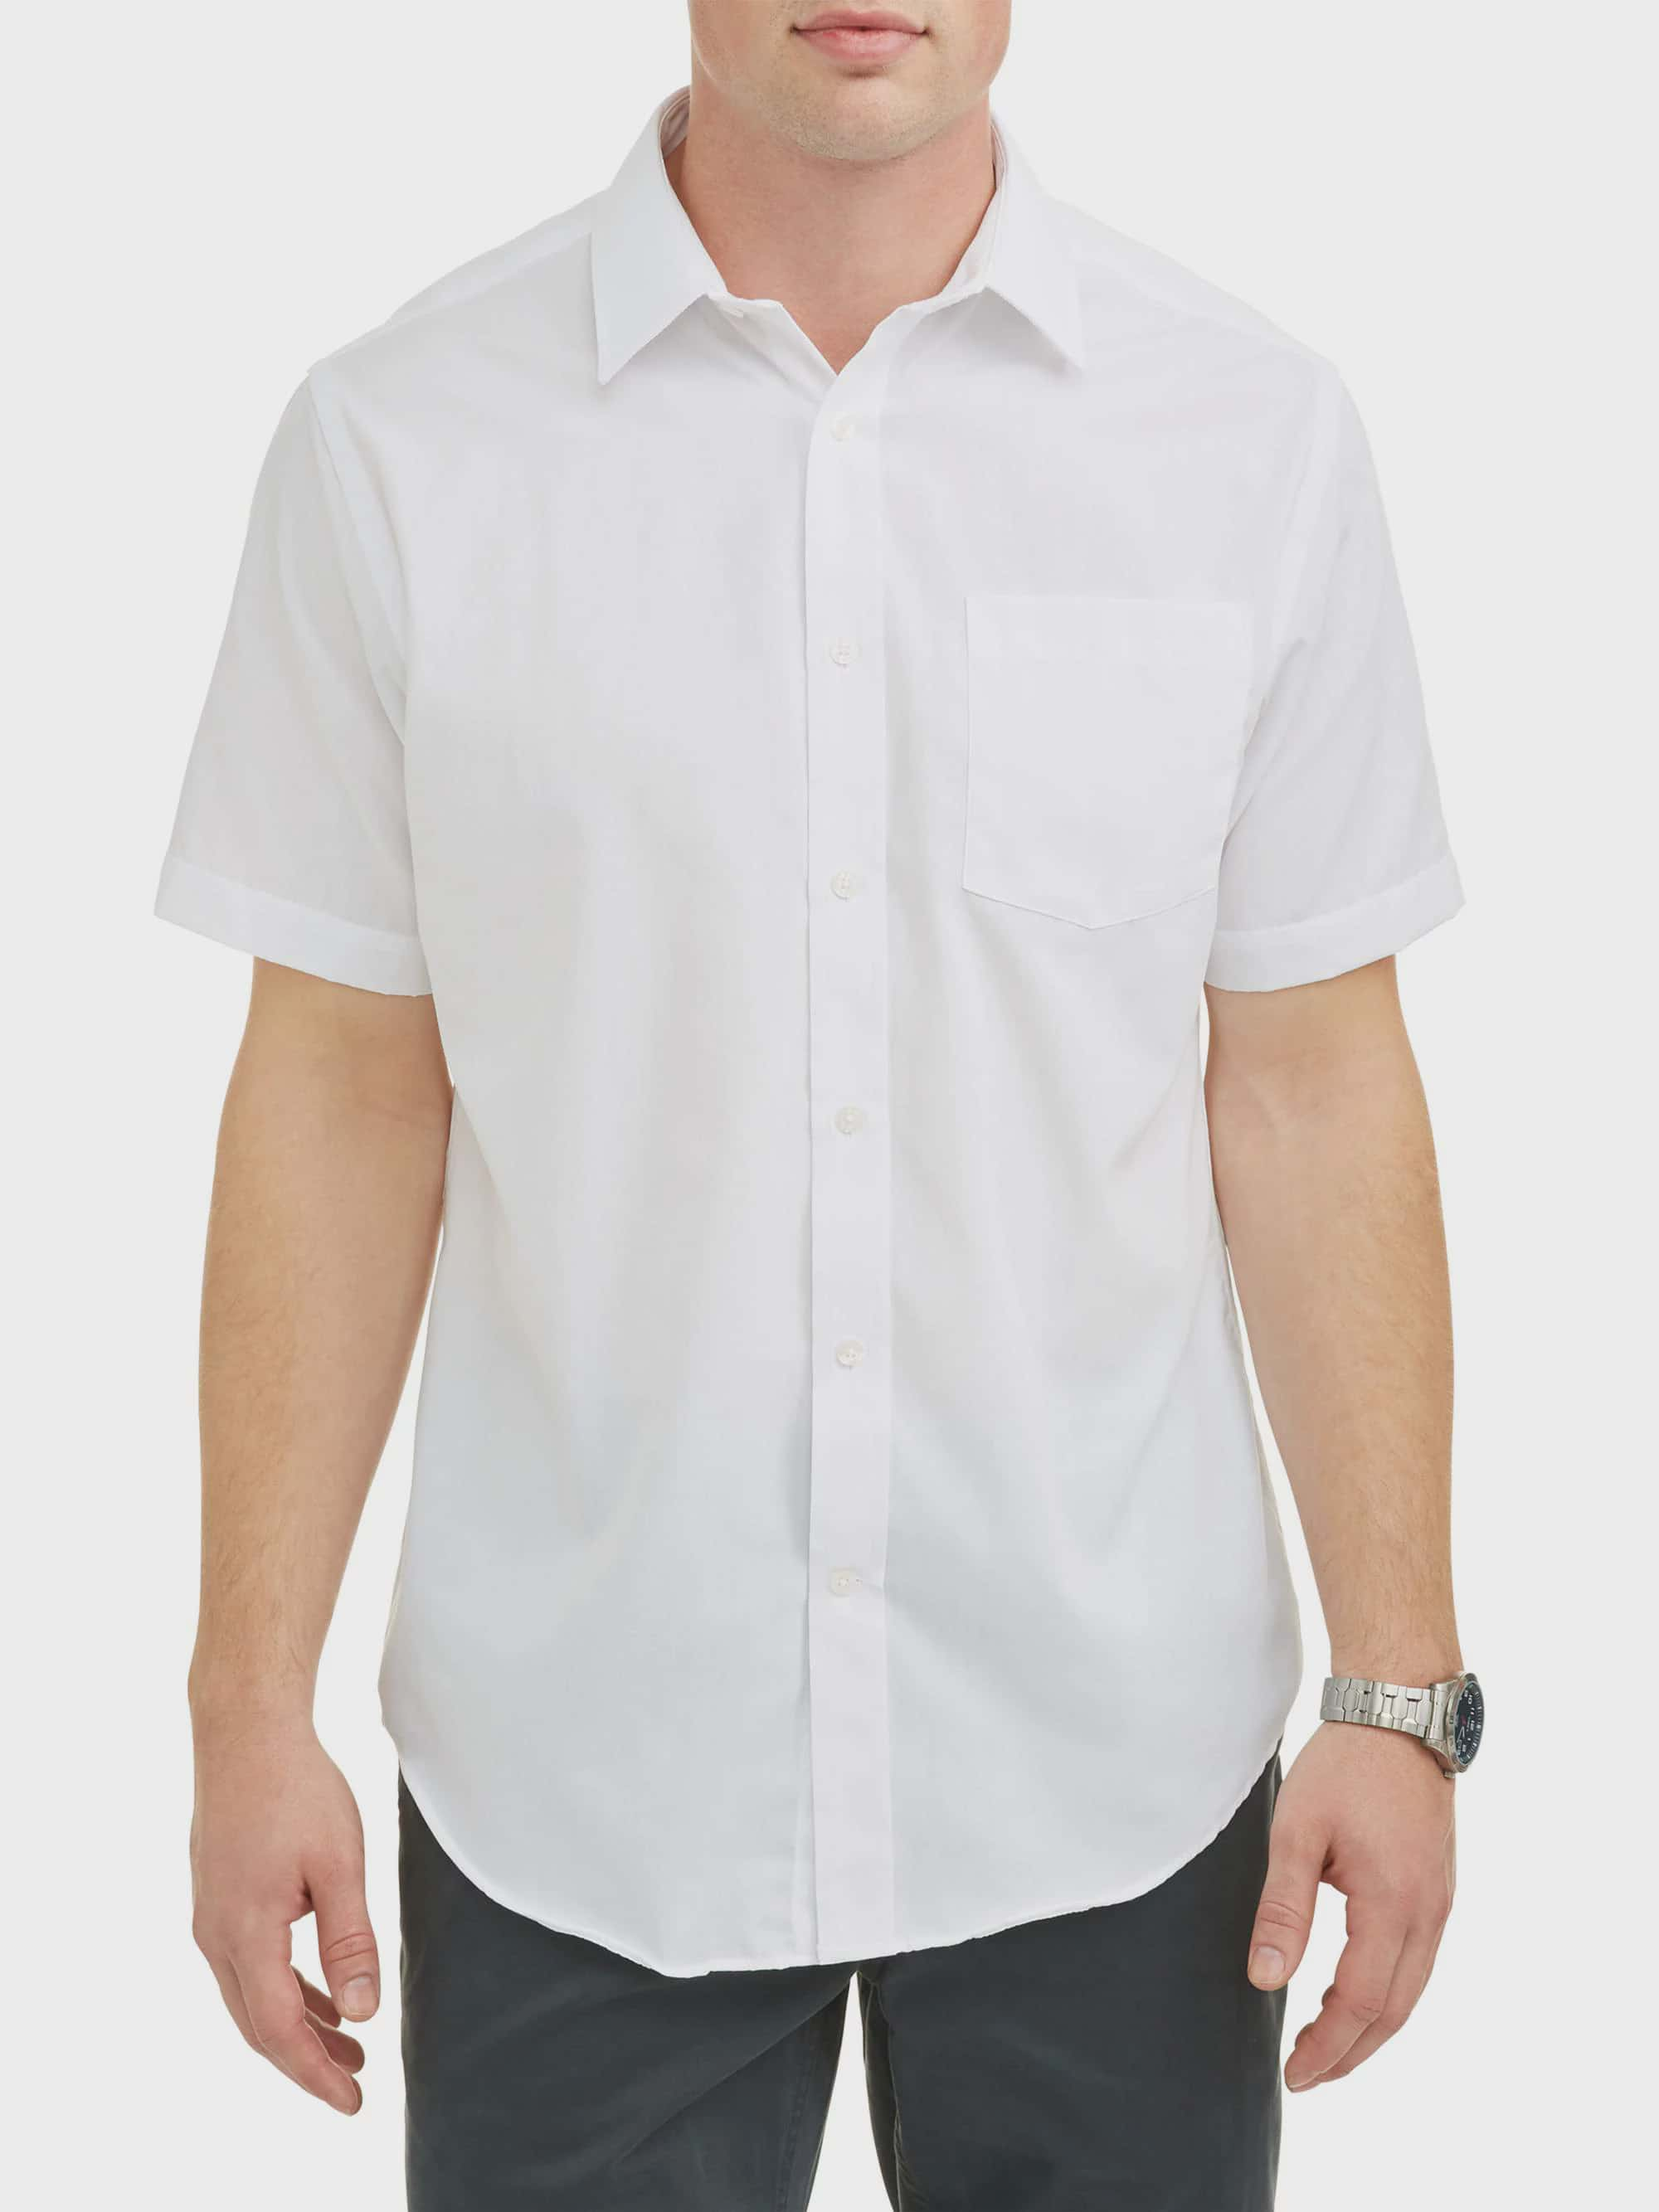 Large Tall Ed Garments Mens Big And Tall short sleeve Button Down shirt WHITE